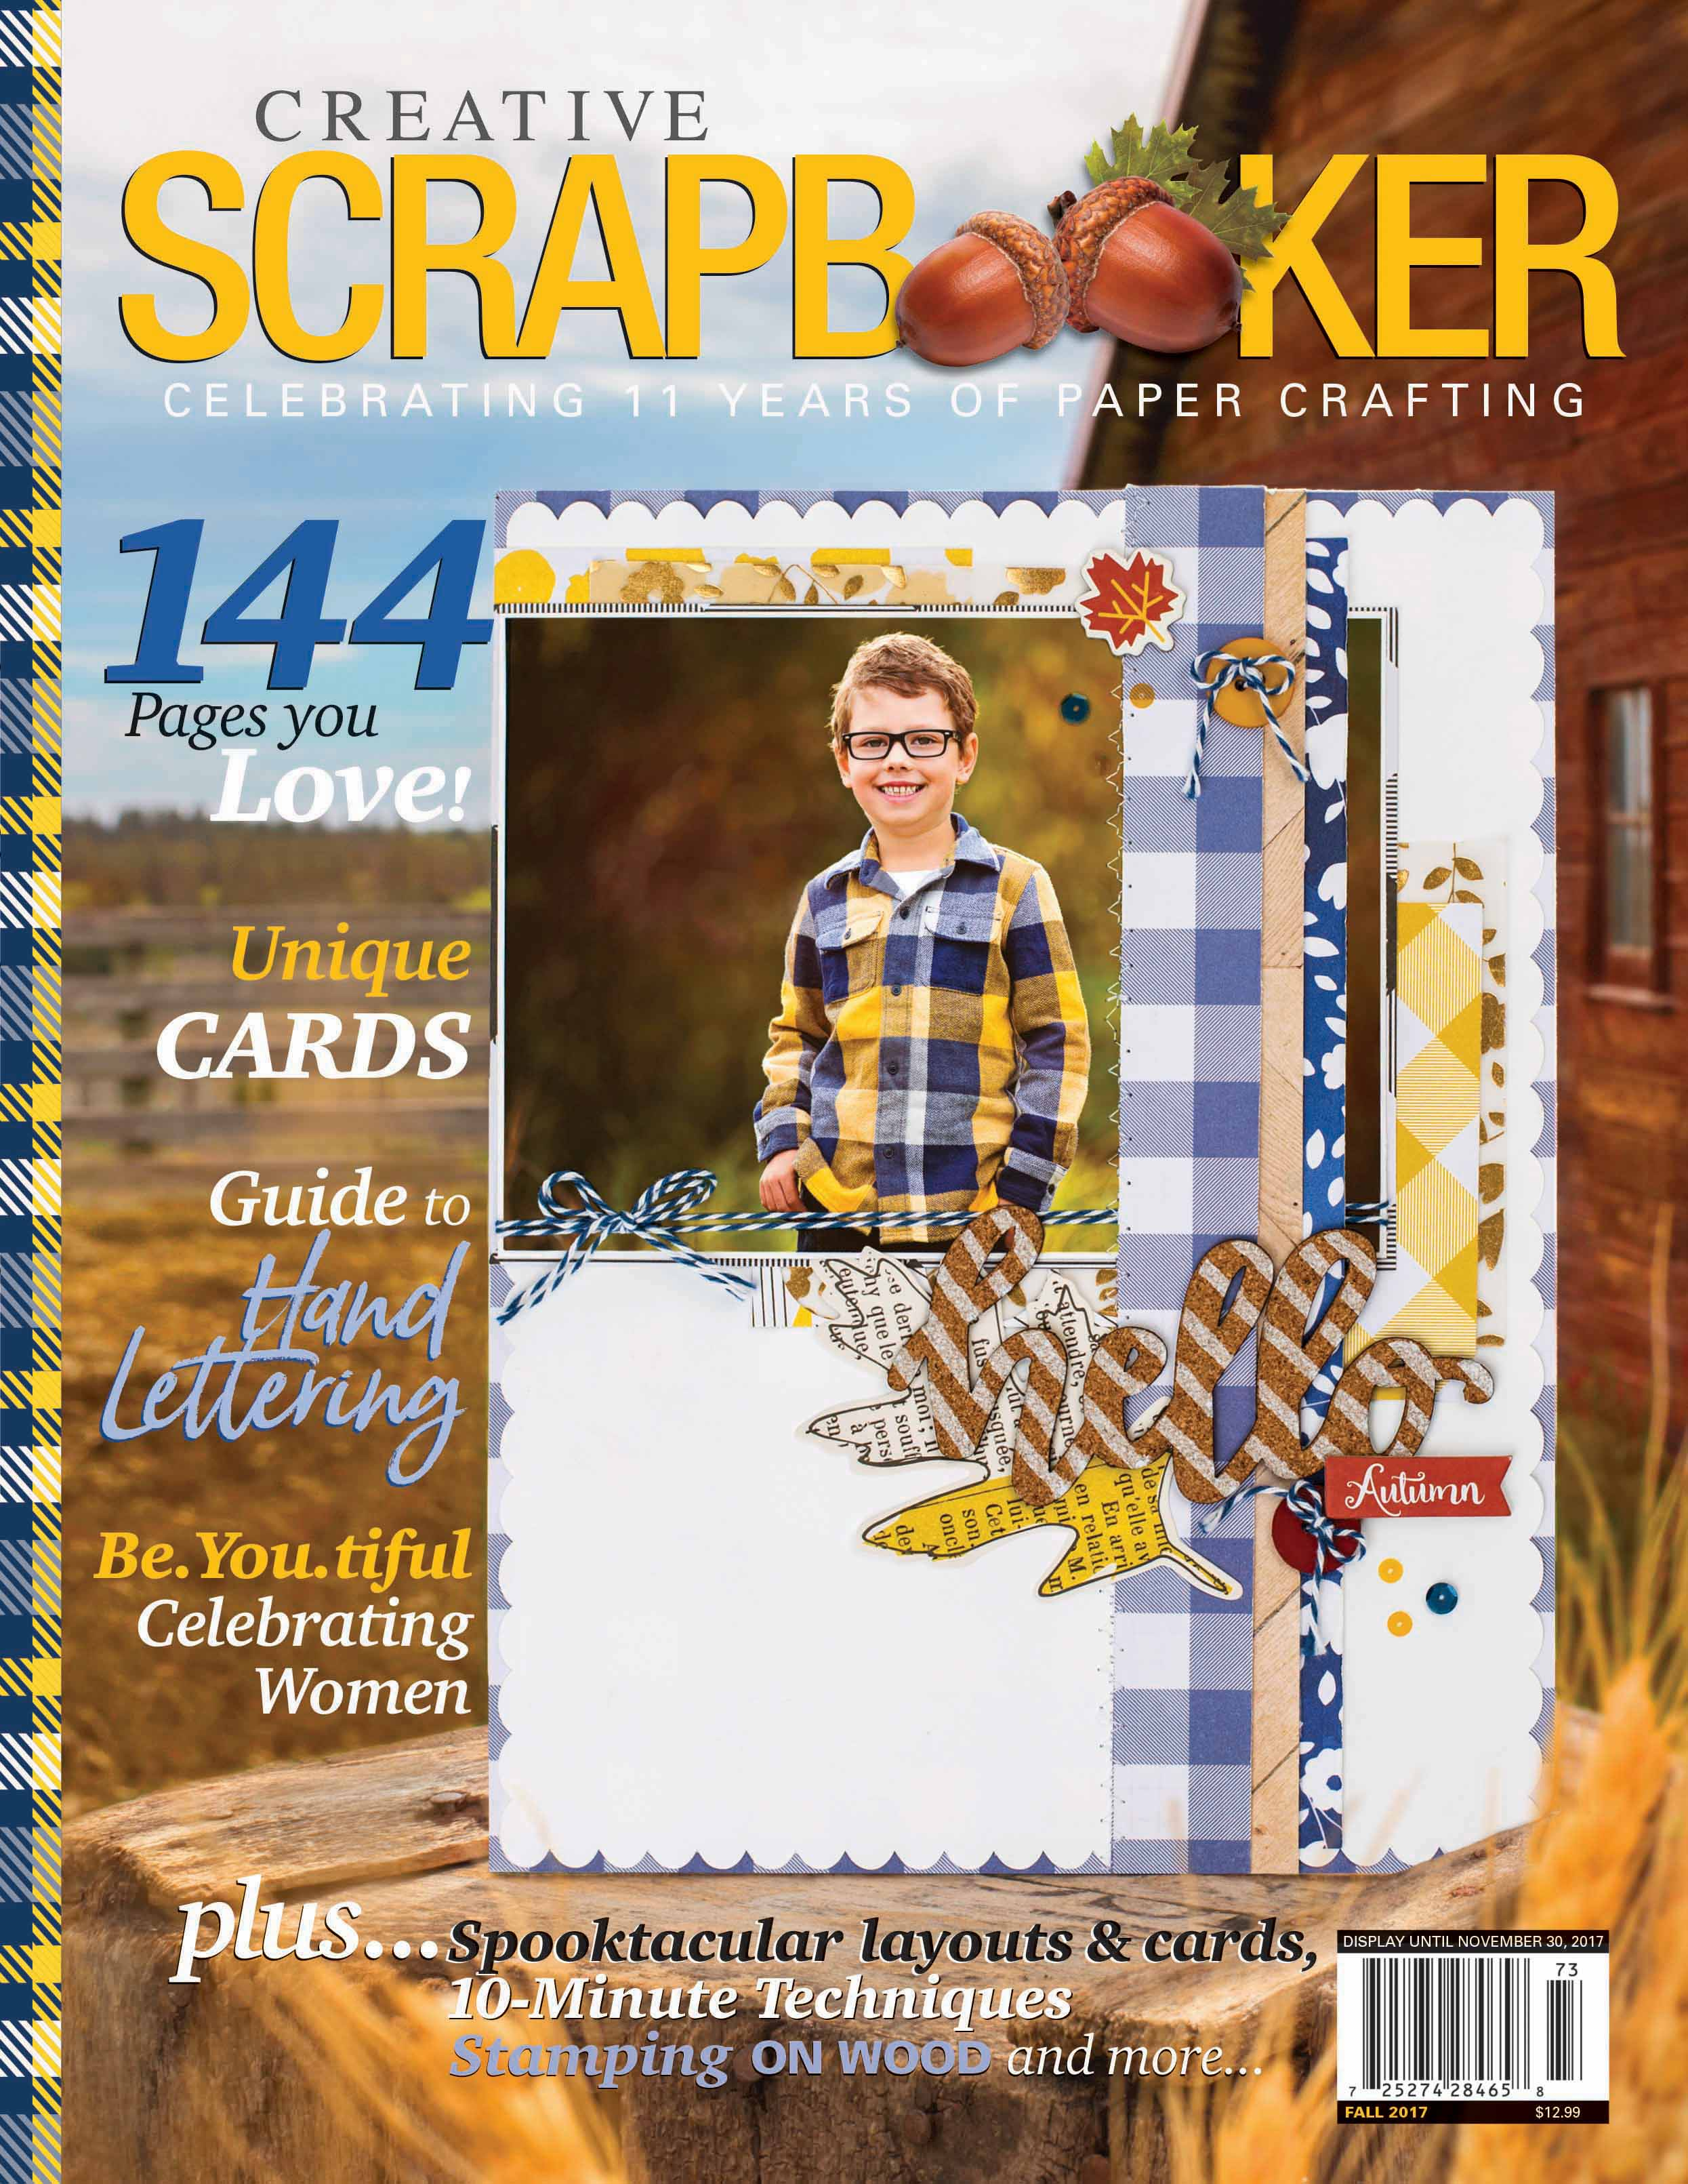 Fall 2017 Creative Scrapbooker Magazine Cover